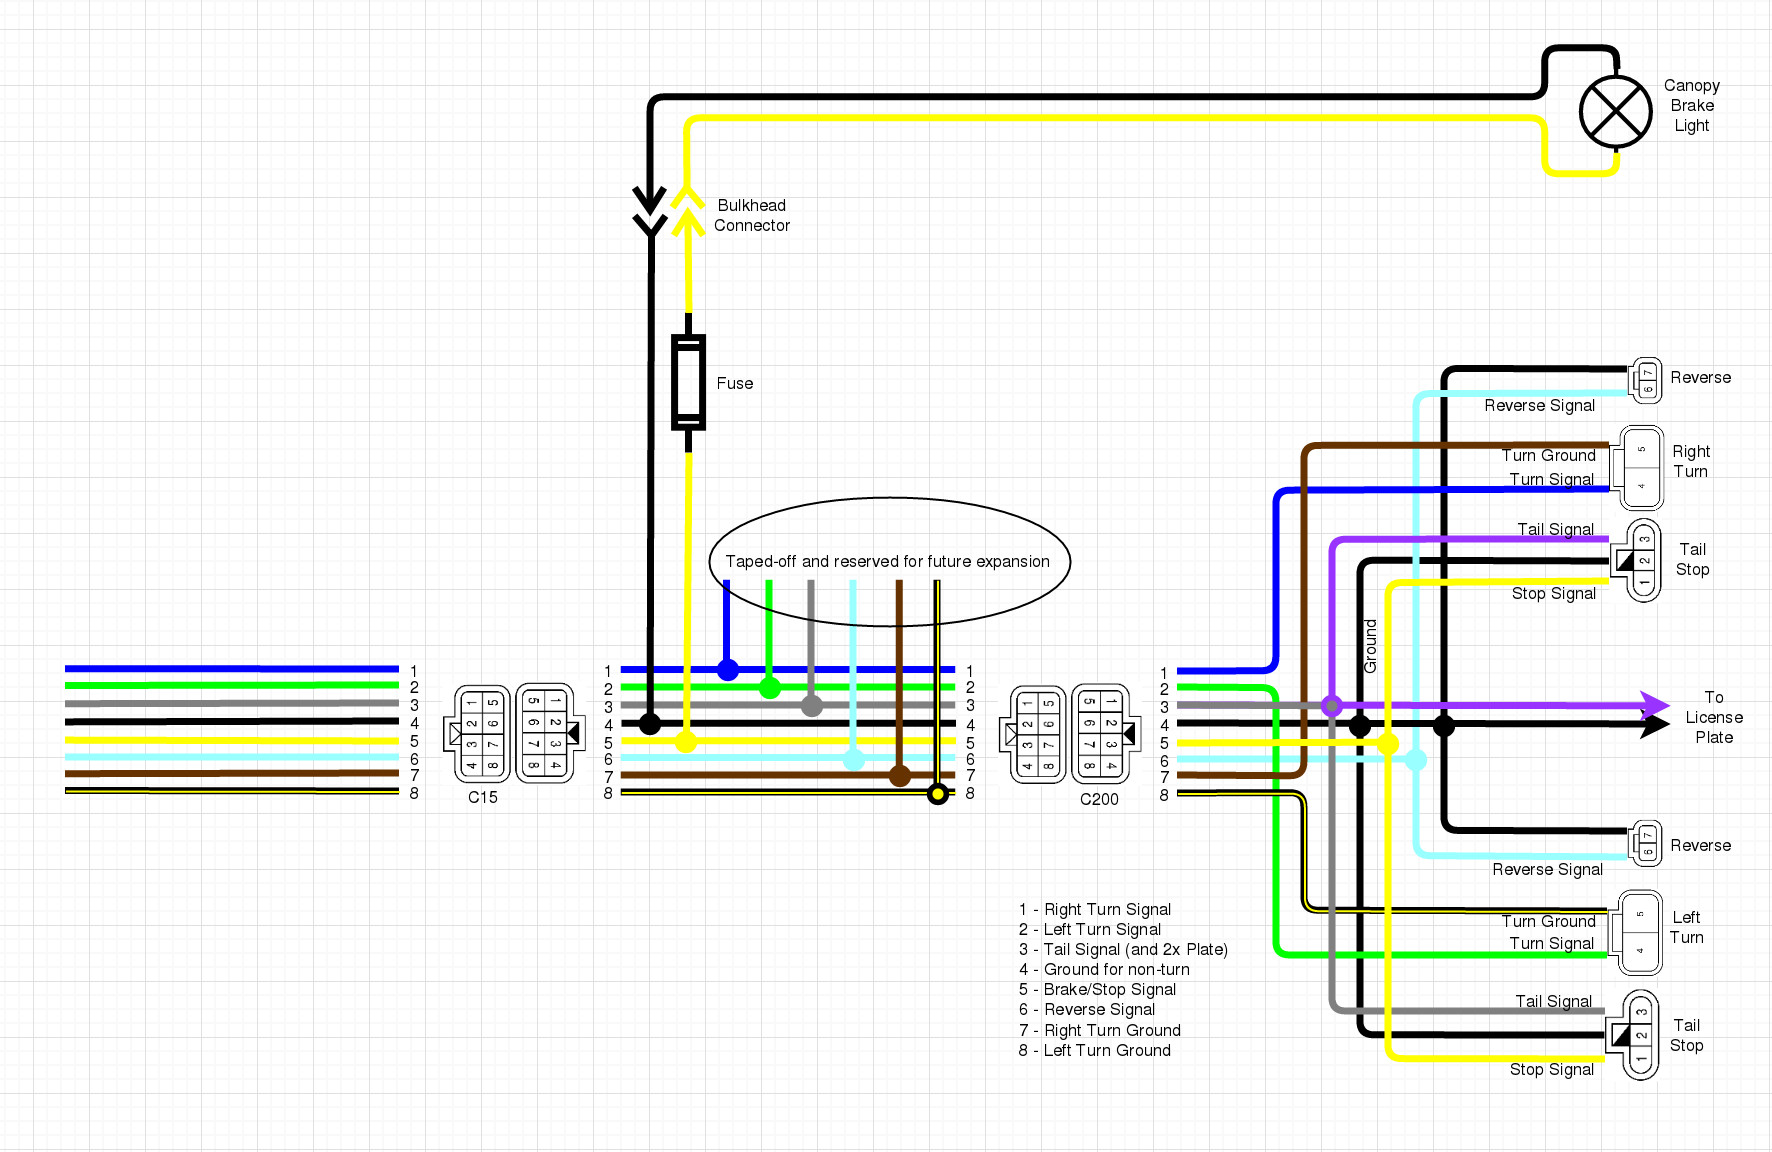 Wiring up the canopy ke light | Nissan Frontier Forum on jeep hurricane wiring diagram, jeep commander wiring diagram, jeep wrangler yj wiring diagram, jeep wagoneer wiring diagram, jeep cherokee sport wiring diagram, jeep cj wiring diagram,